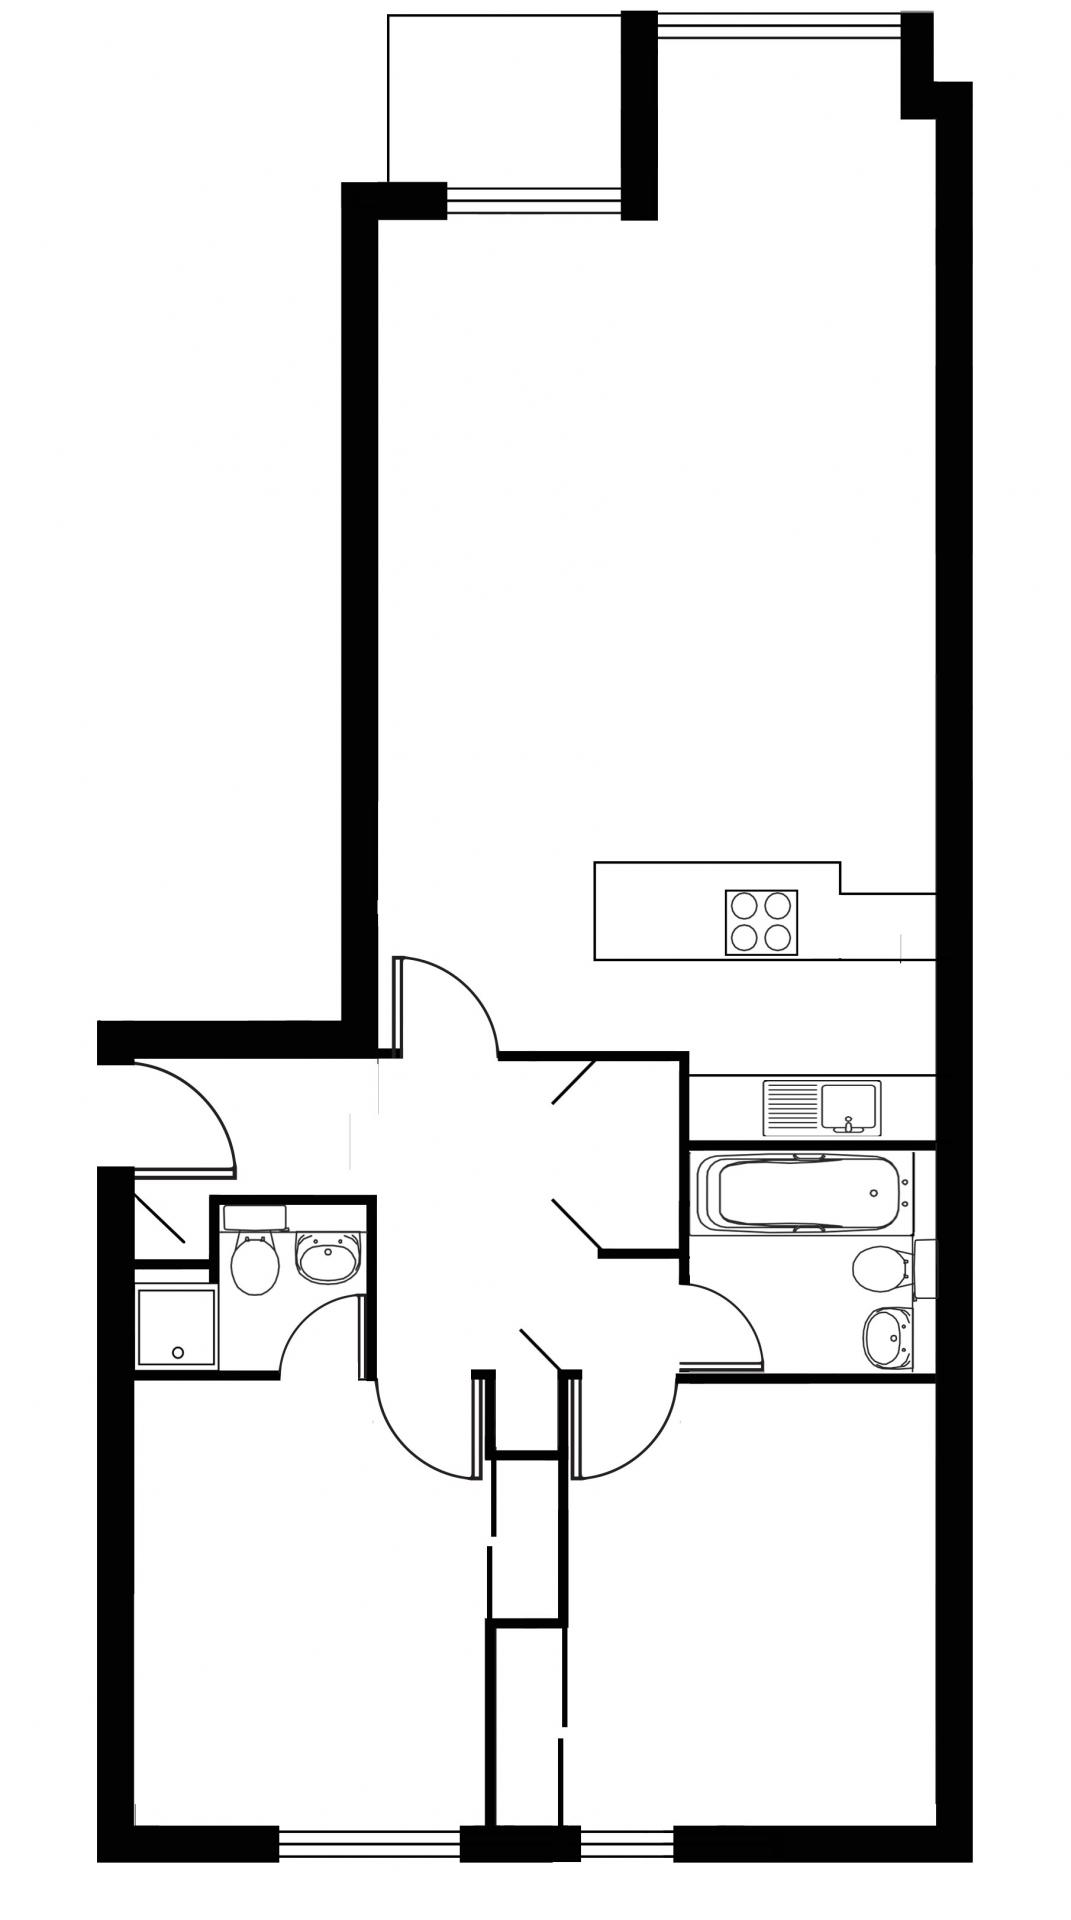 Floor plan 2 at Tolbooth Apartments